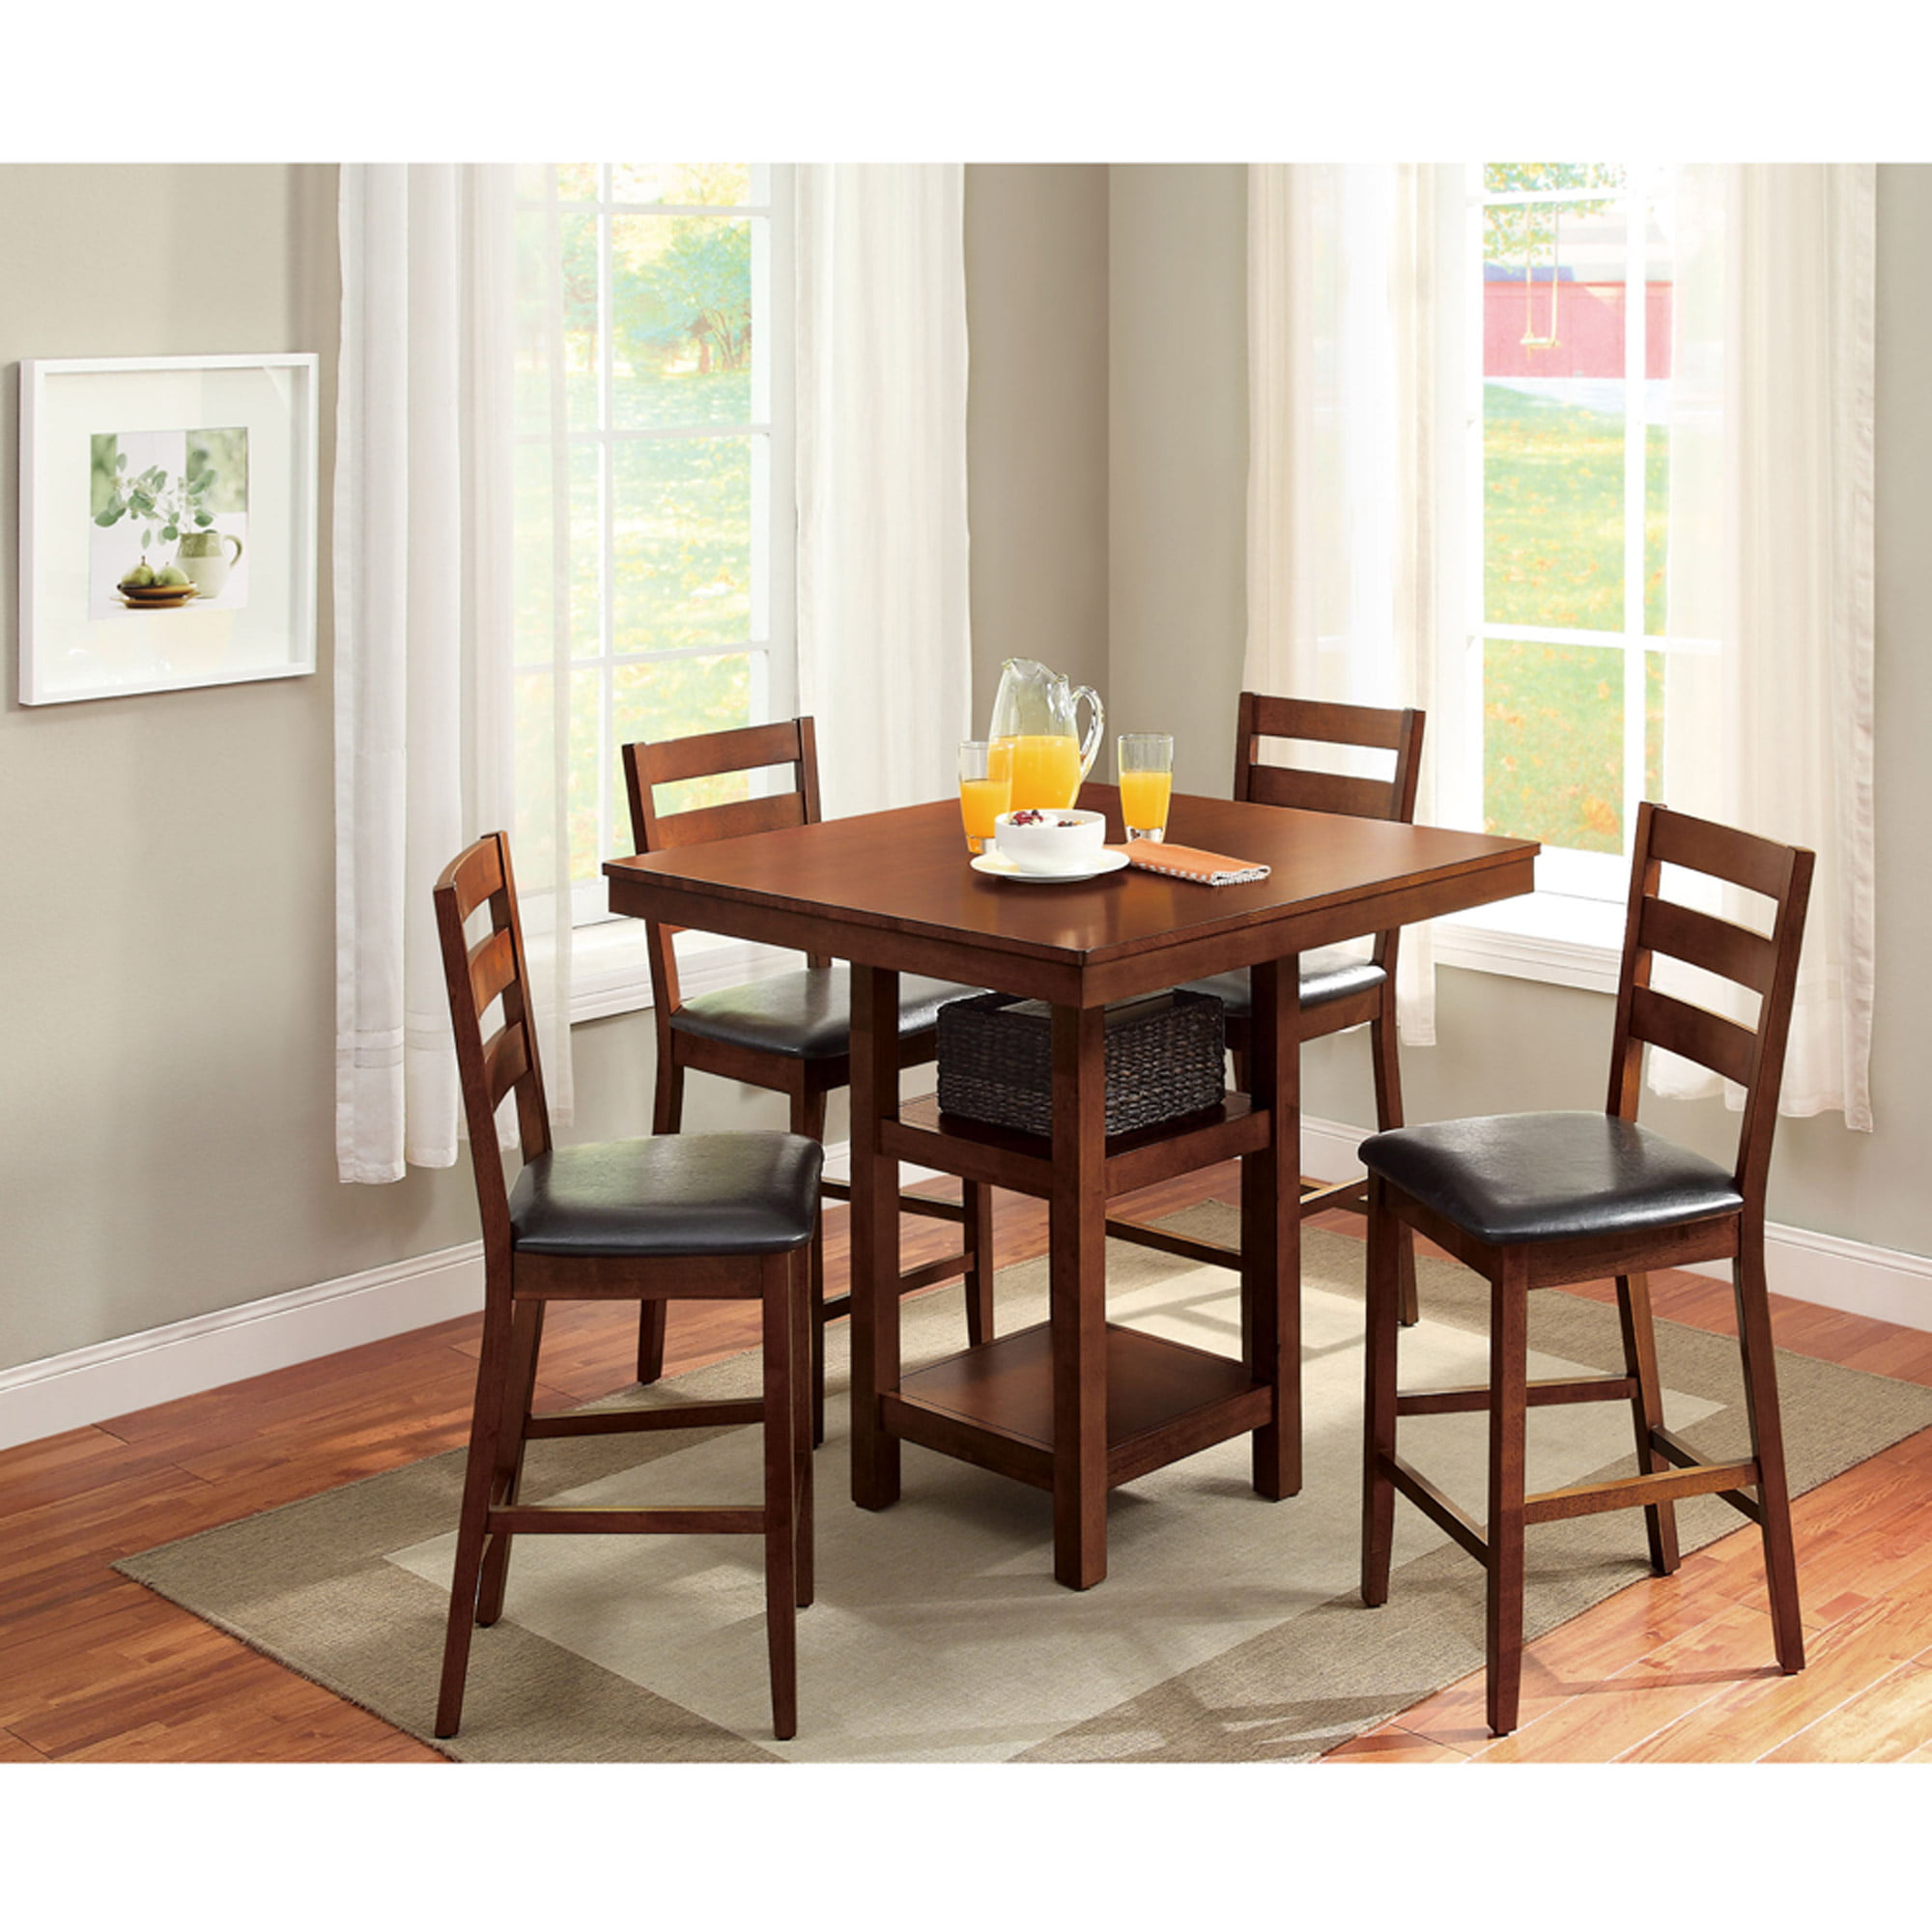 Dining Room Table Set Prepossessing Kitchen & Dining Furniture  Walmart Decorating Inspiration